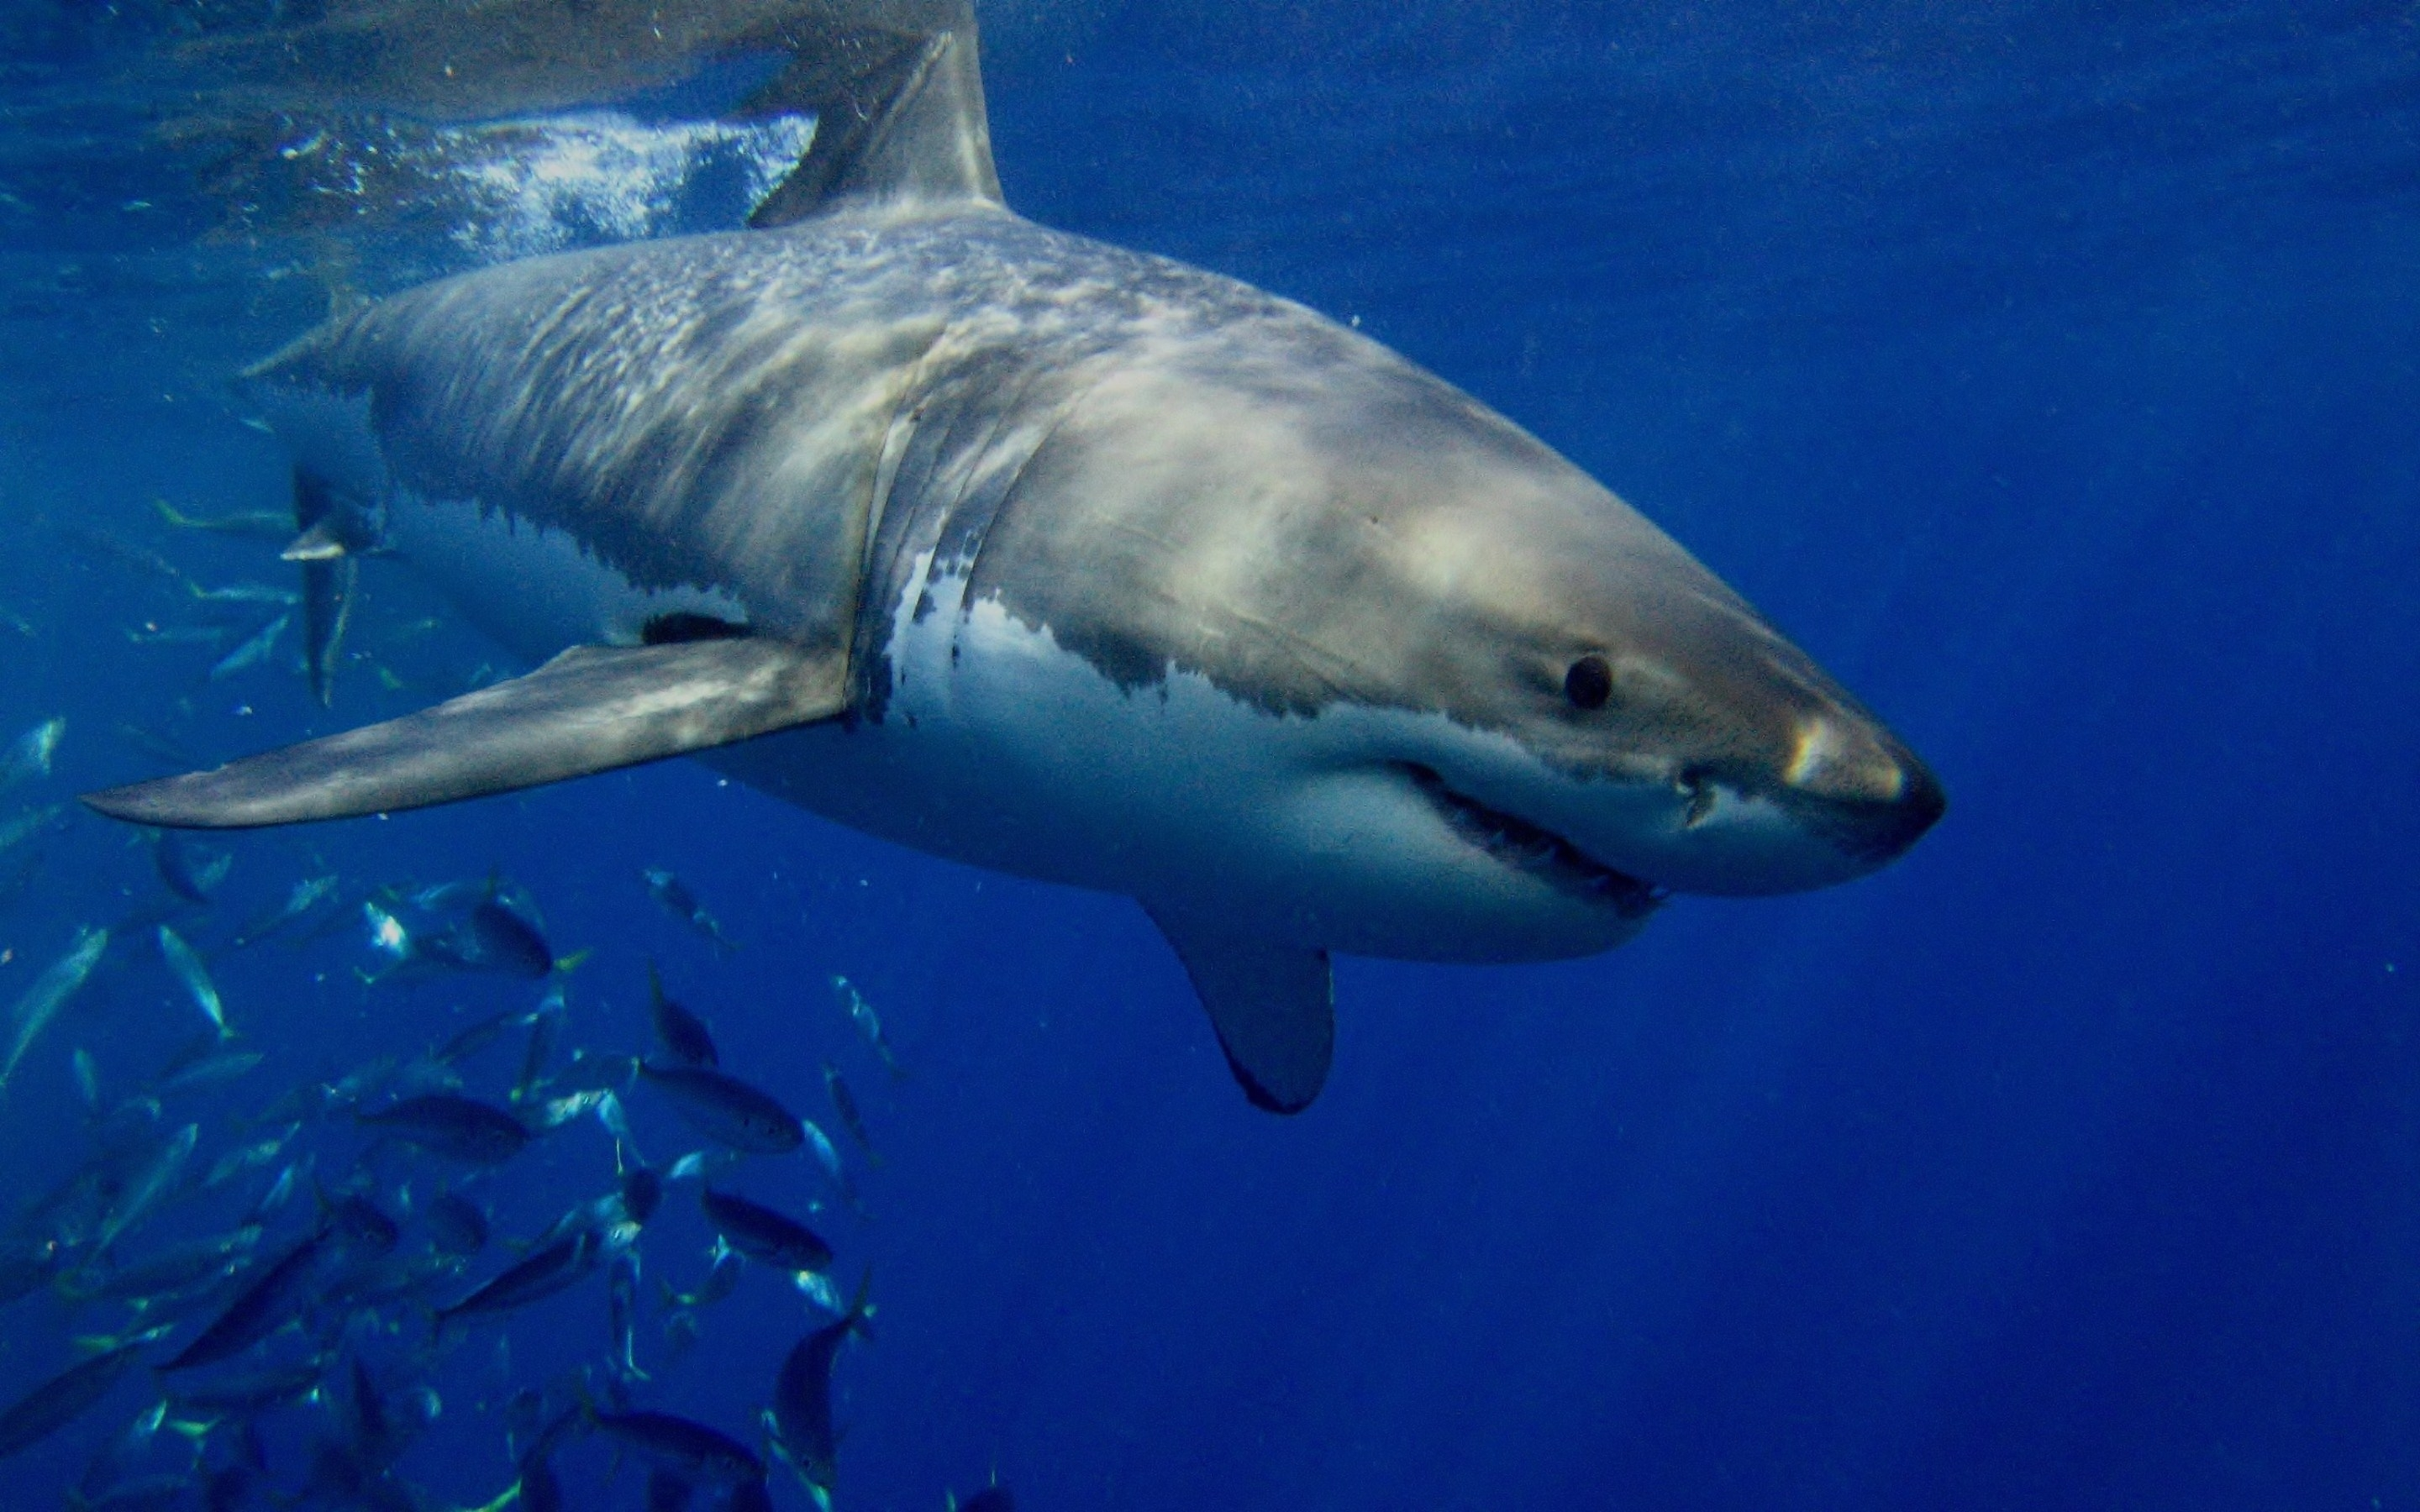 25 great white shark hd wallpapers | background images - wallpaper abyss